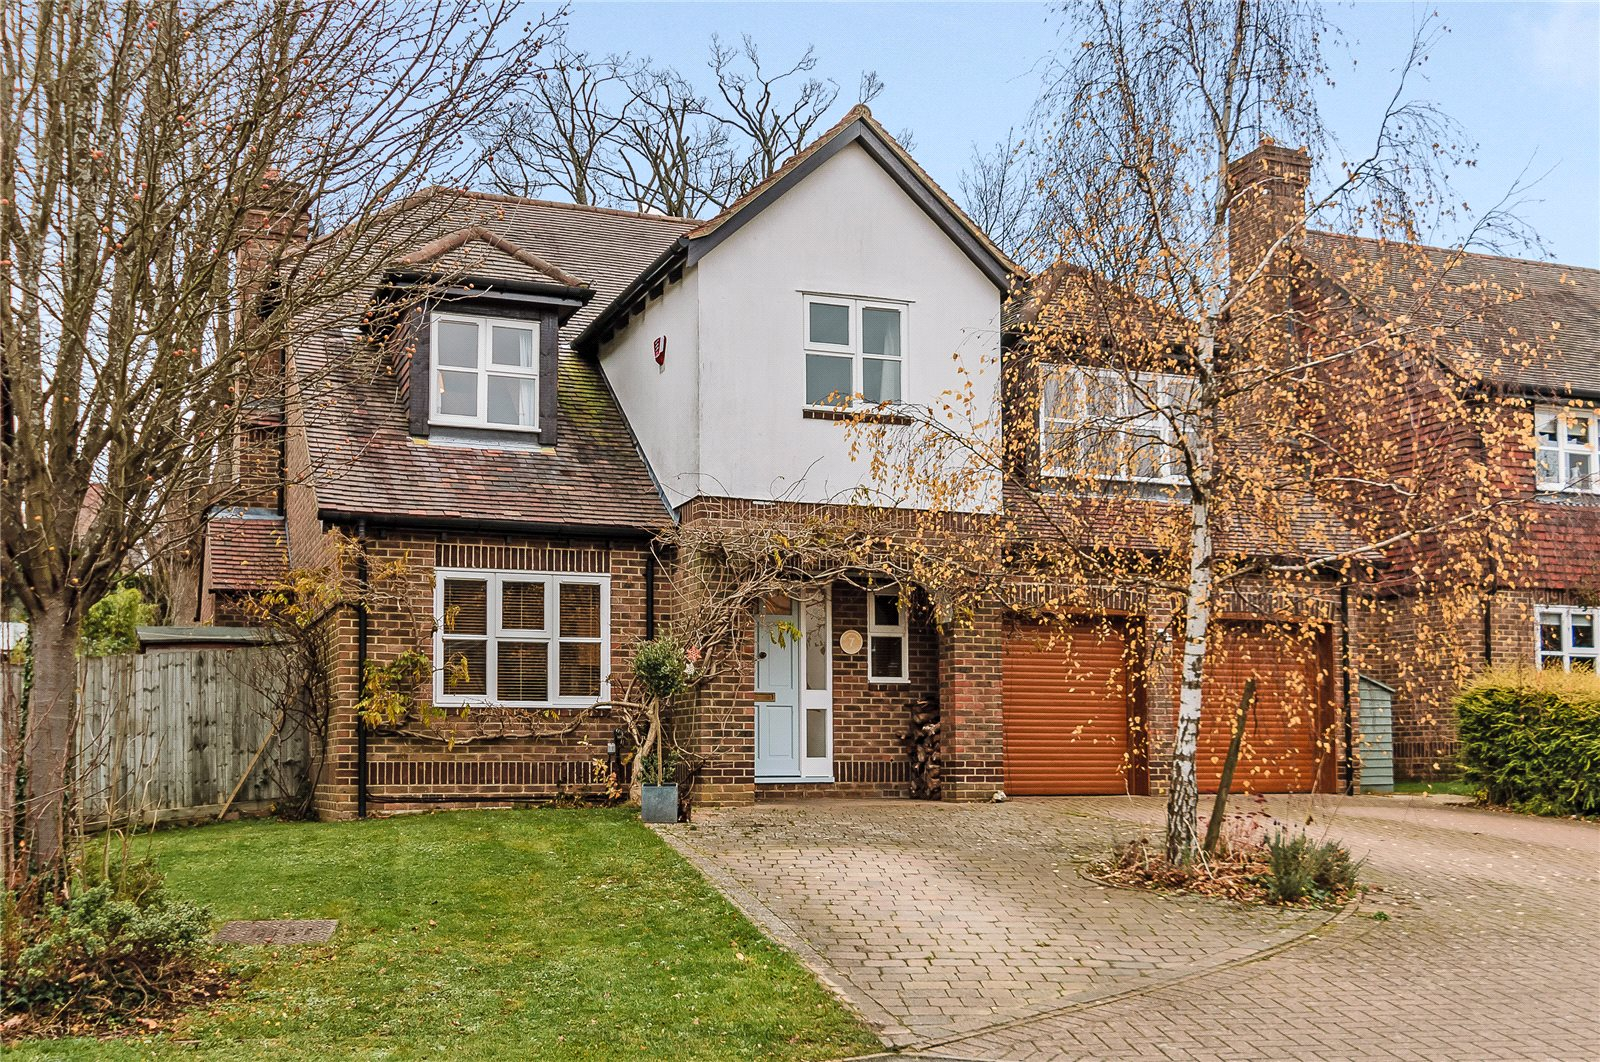 Single Family Home for Sale at Hales Meadow, Harpenden, Hertfordshire, AL5 Harpenden, England